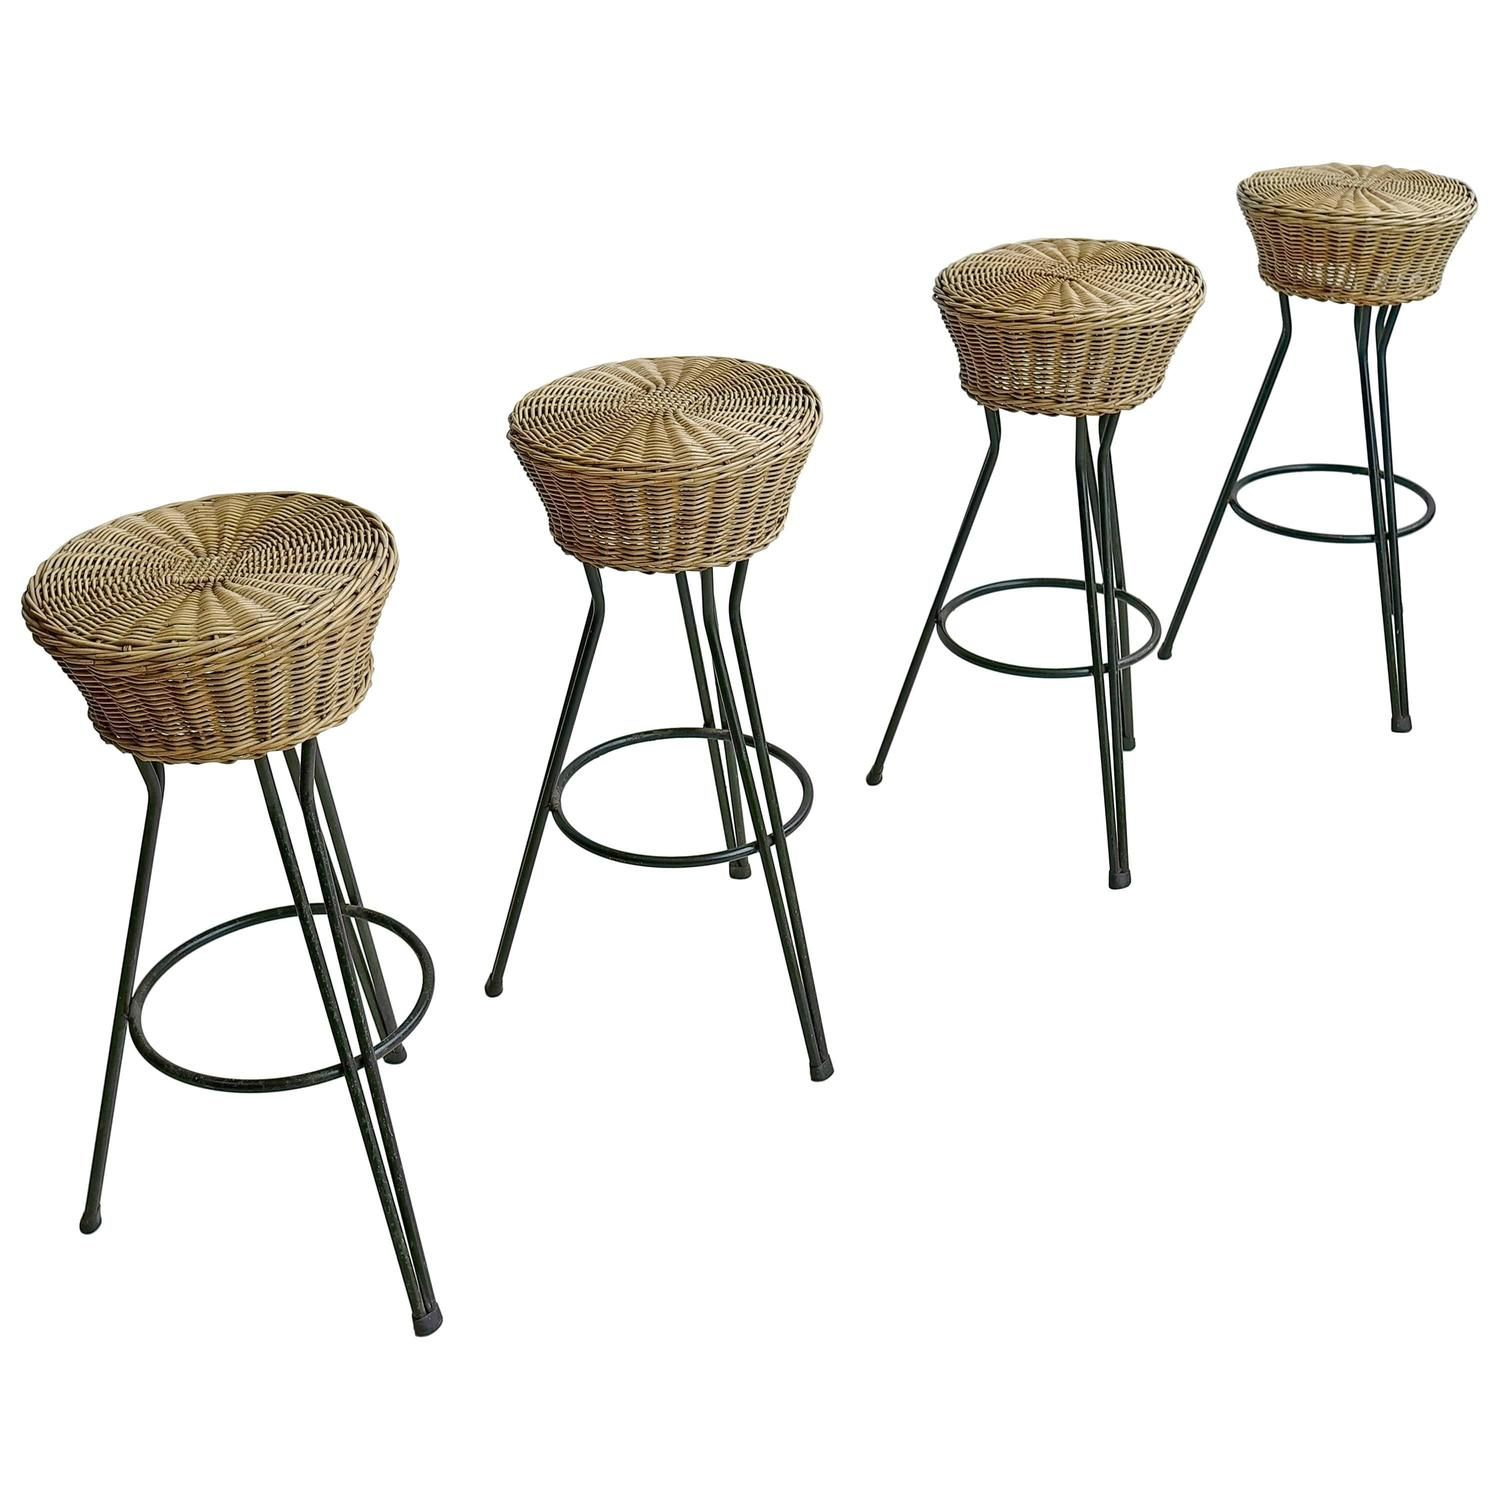 Set Of Four Hairpin Barstools In Wicker And Steel By Dirk Van Sliedregt Bar Stools Wicker Modern Stools